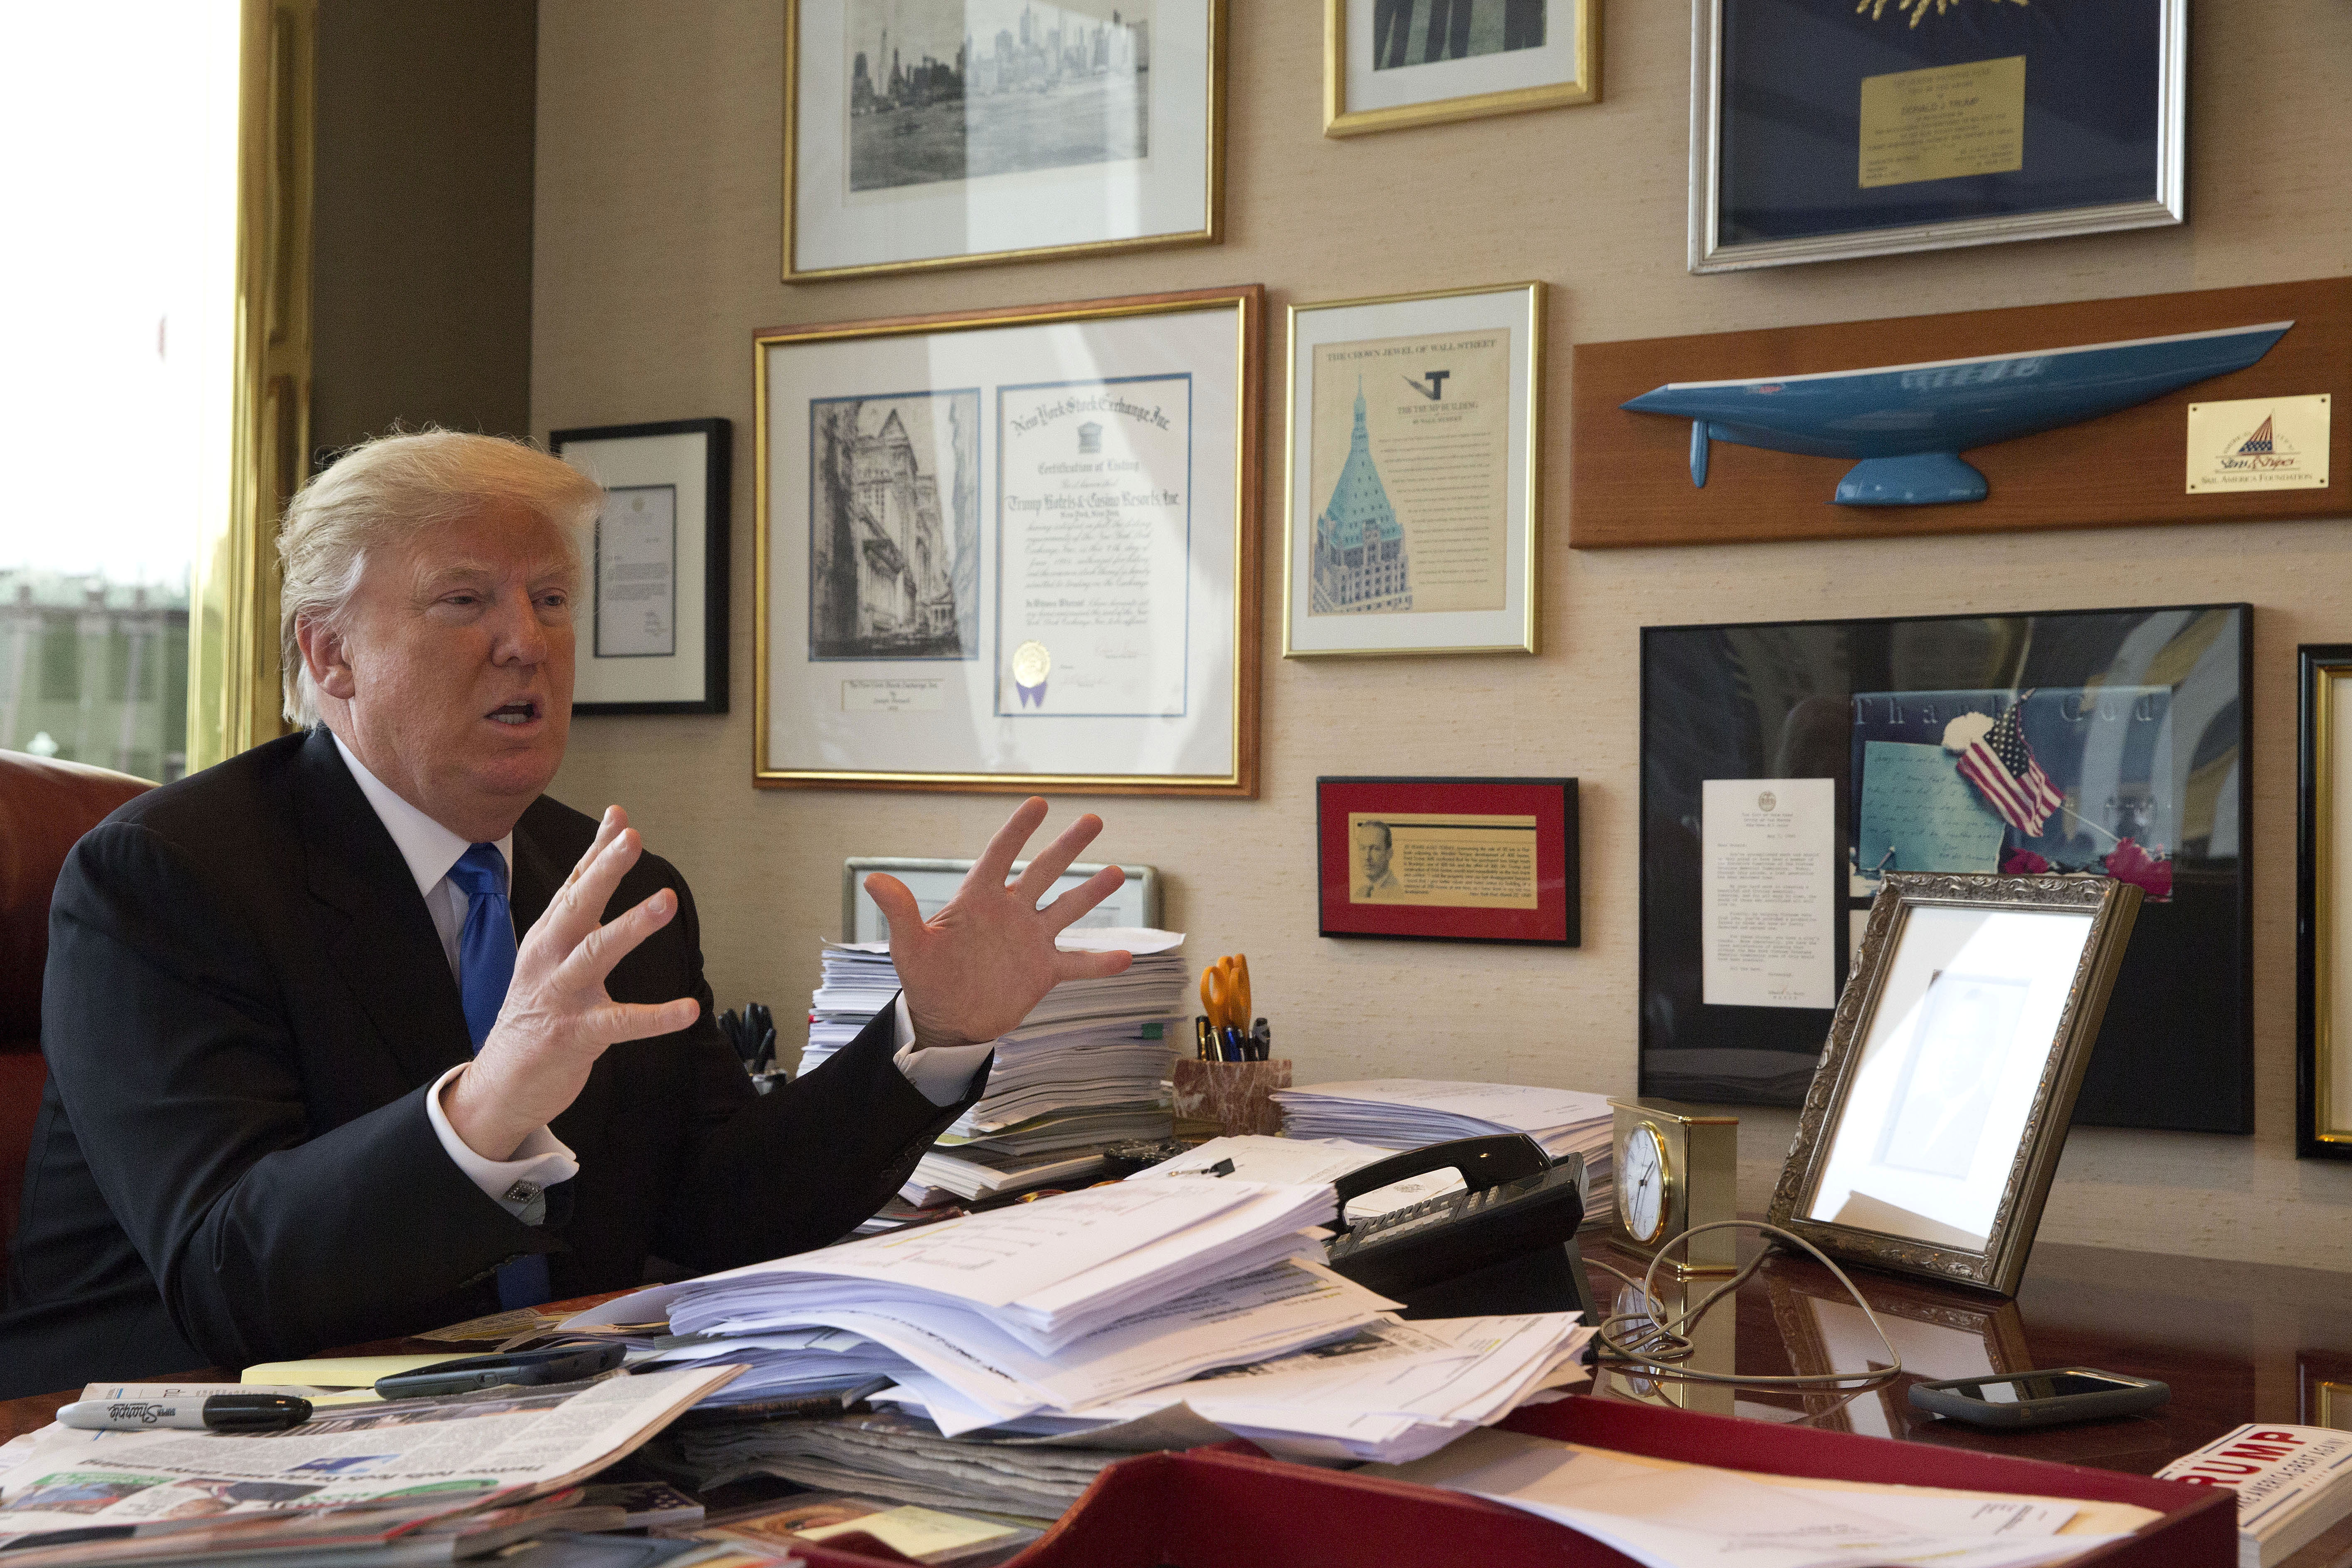 FILE - Republican presidential candidate Donald Trump gestures as he speaks during an interview with The Associated Press in his office at Trump Tower in New York, May 10, 2016. Trump once hired a man convicted of trying to break a triple murderer ou...